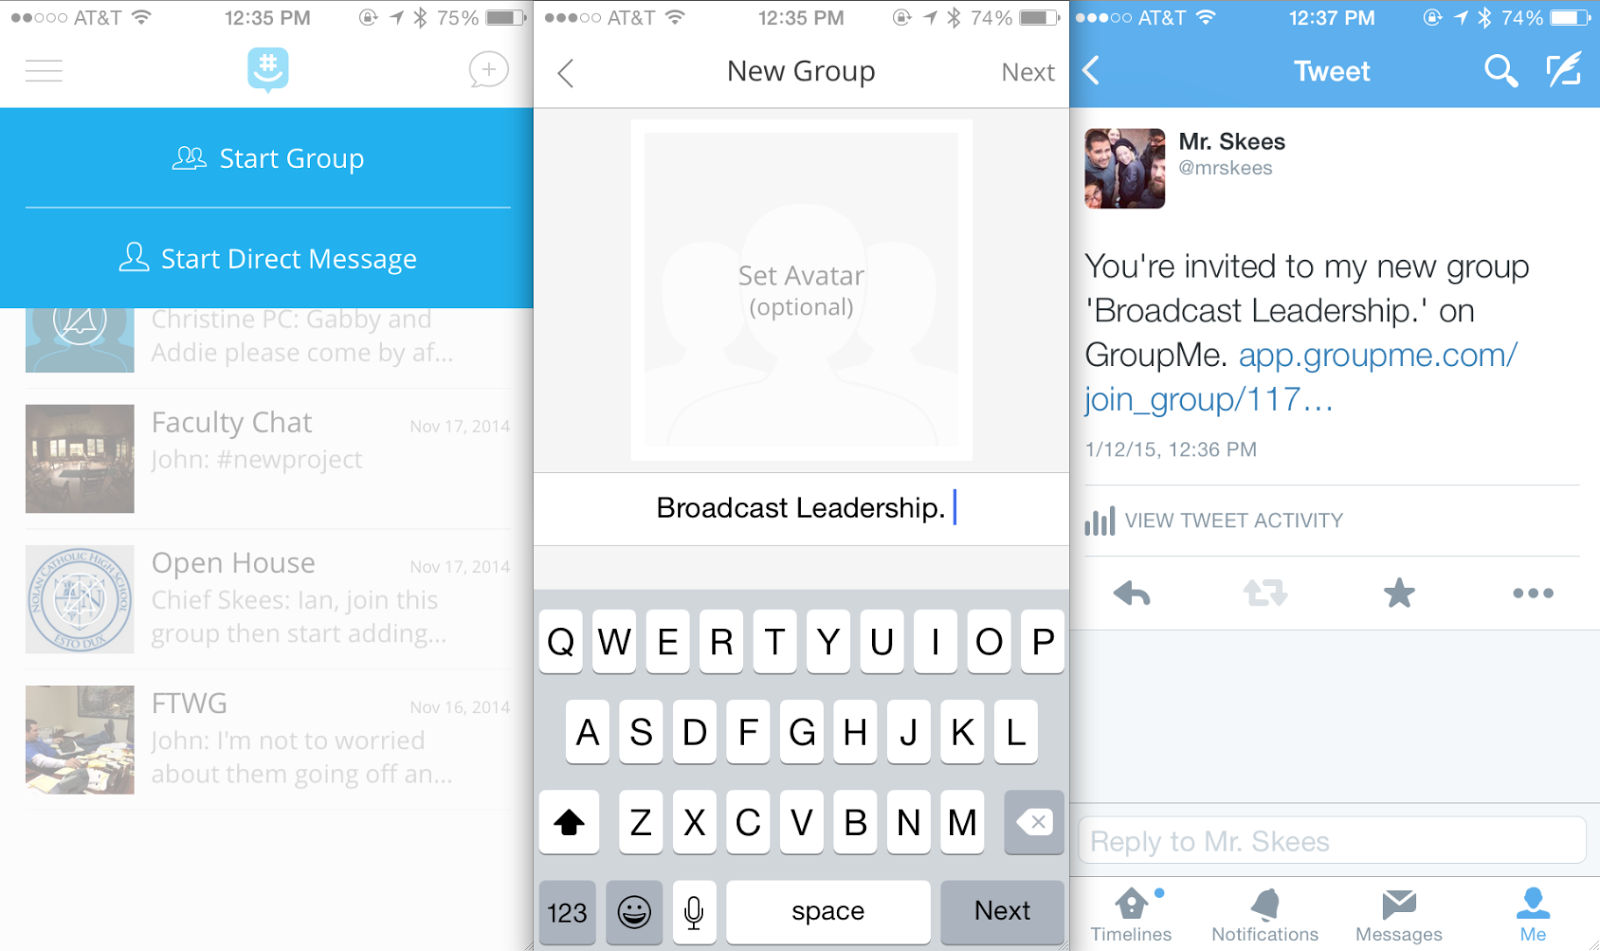 Technology: Apps for Group Work Collaboration (GroupMe